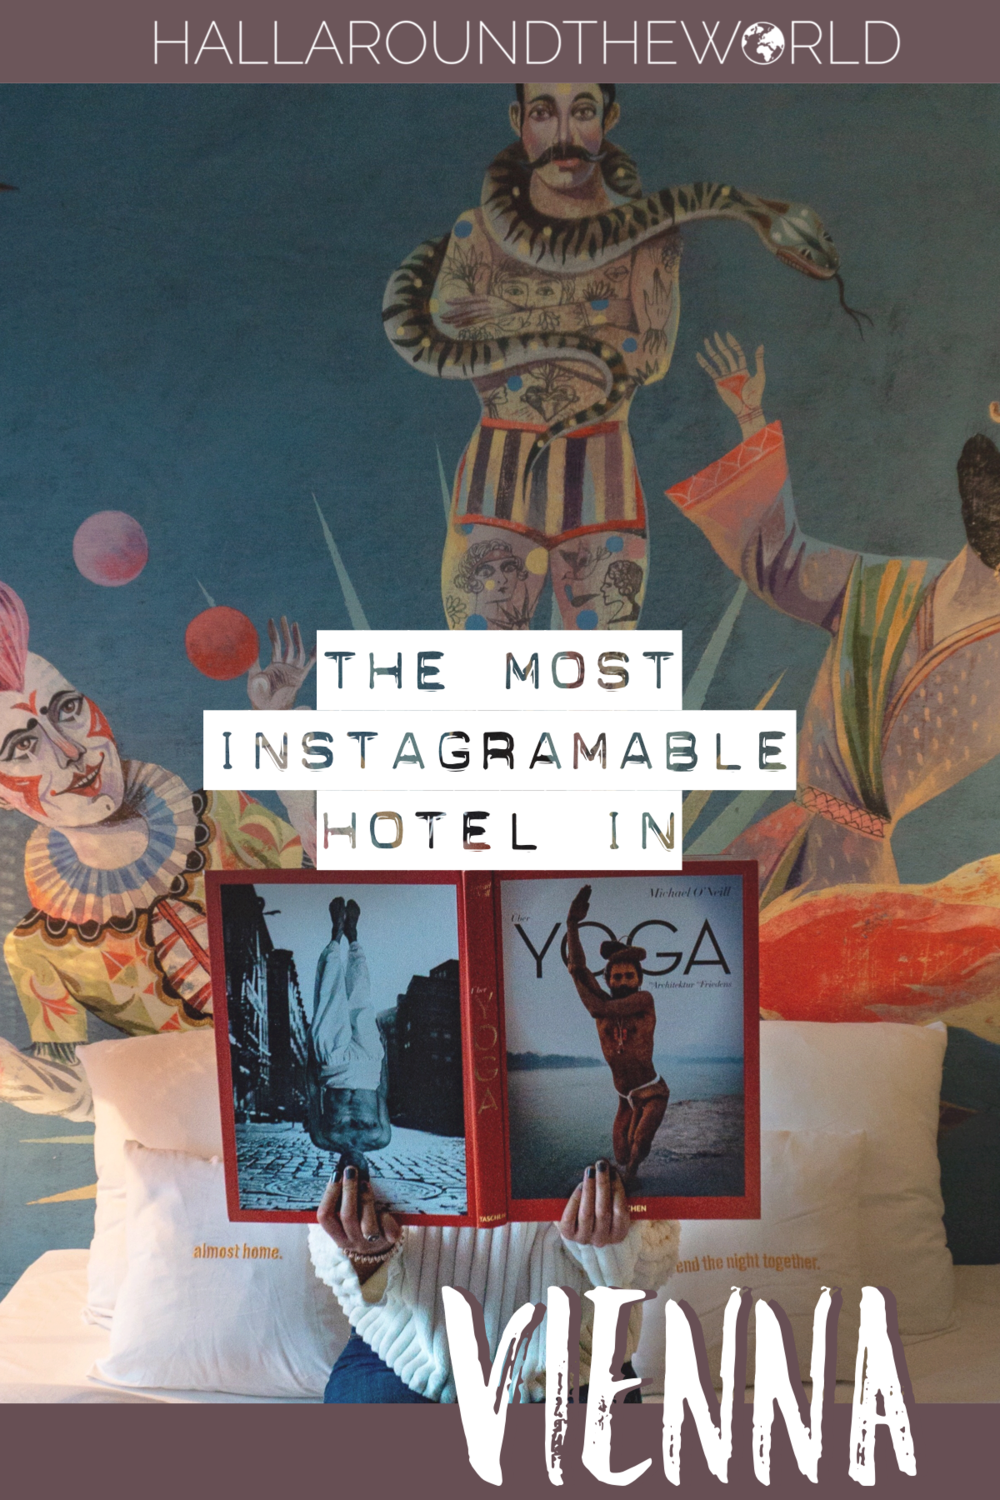 Vienna's Most Instagramable Hotel - Hotel Highlights HallAroundtheWorld